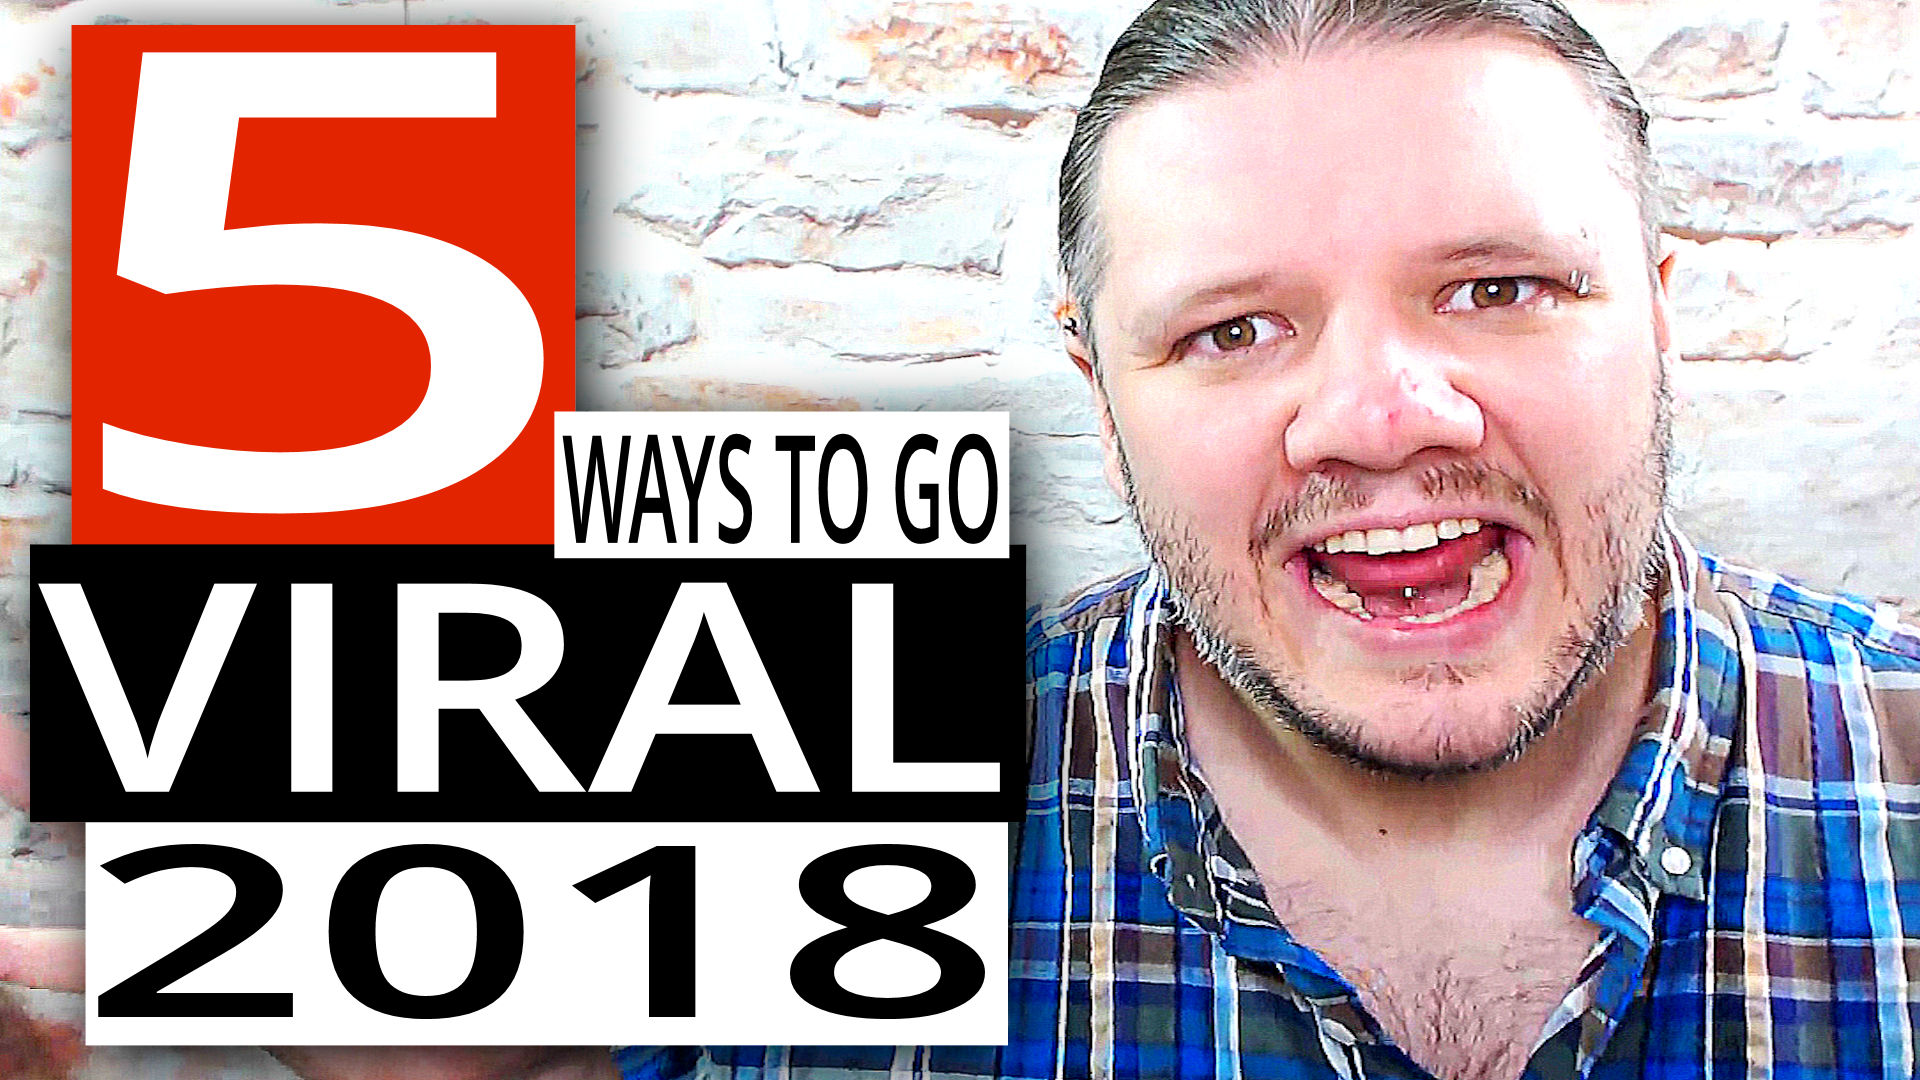 alan spicer,alanspicer,youtube tips,youtube tricks,asyt,5 Ways To Go Viral On YouTube in 2018,5 Ways To Go Viral,5 Ways To Go Viral On YouTube,Go Viral On YouTube in 2018,Ways To Go Viral On YouTube in 2018,Ways To Go Viral,Ways To Go Viral On YouTube,Go Viral On YouTube,youtube 2018,youtube tips 2018,go viral in 2018,tips to go viral on youtube,viral,how to go viral,how to make a viral video,evergreen content,2018,youtube rewind 2017,youtube rewind,spicer